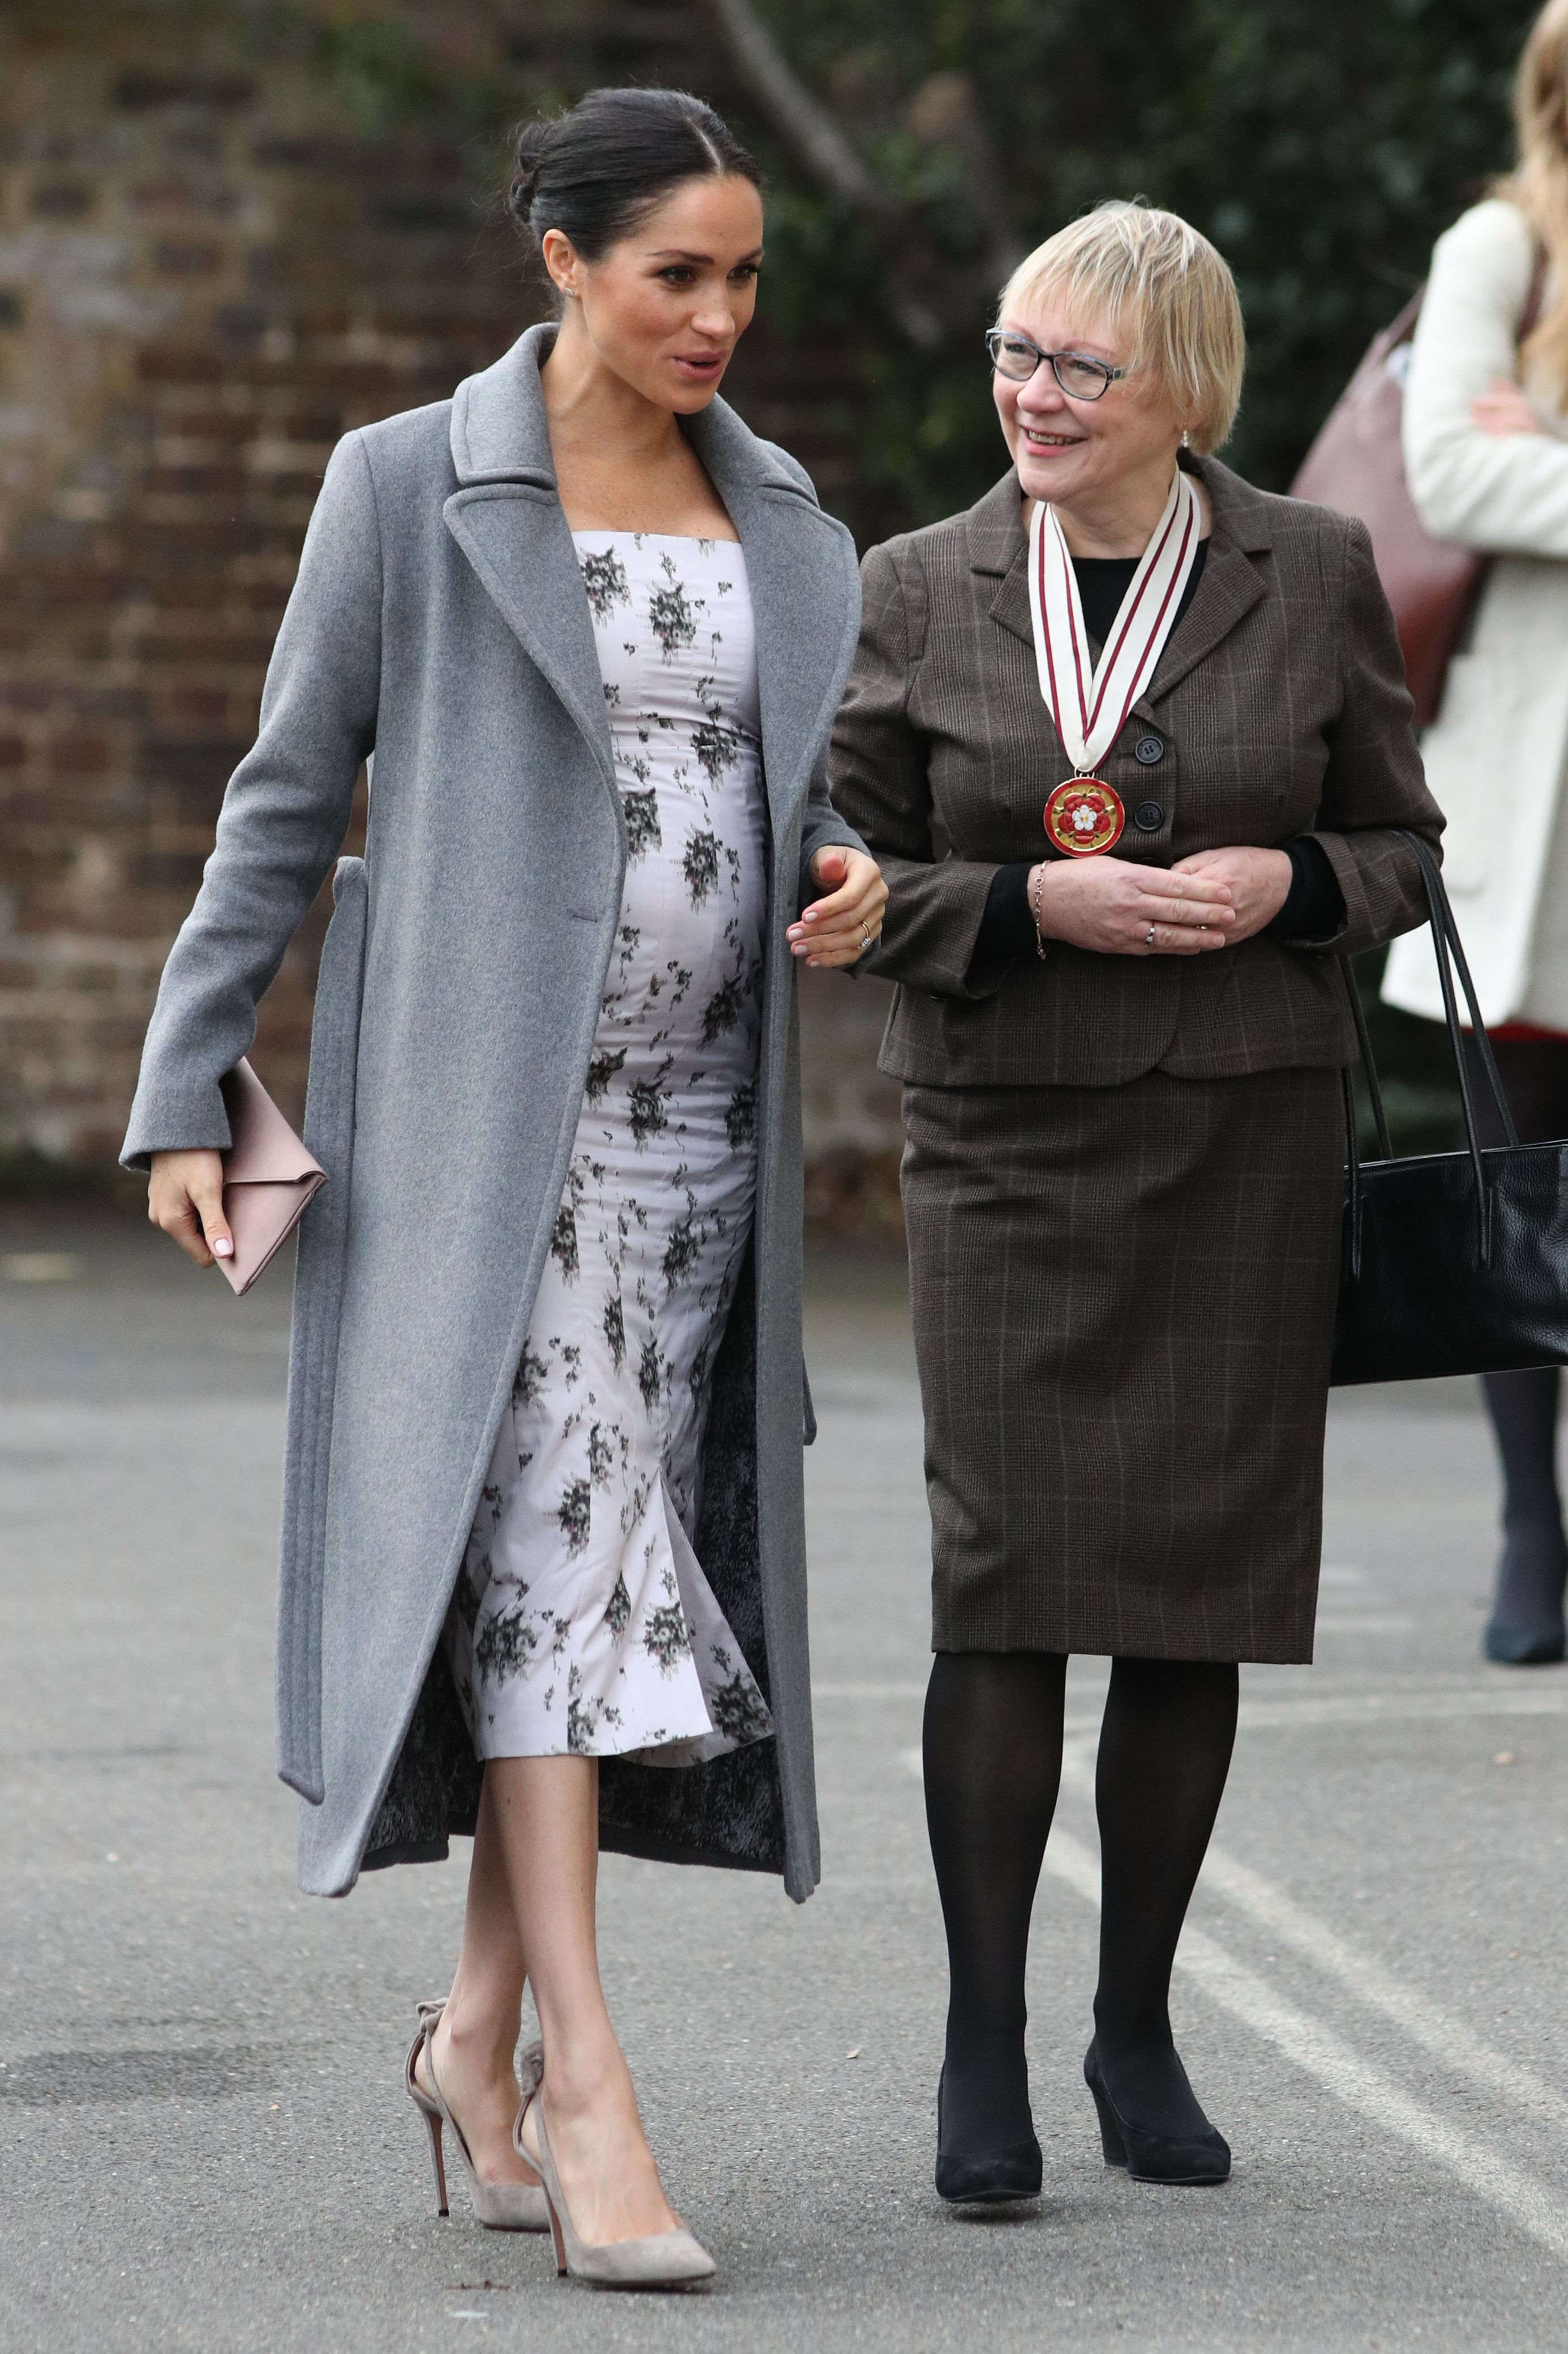 She wrapped up in a chic gray coat, too.